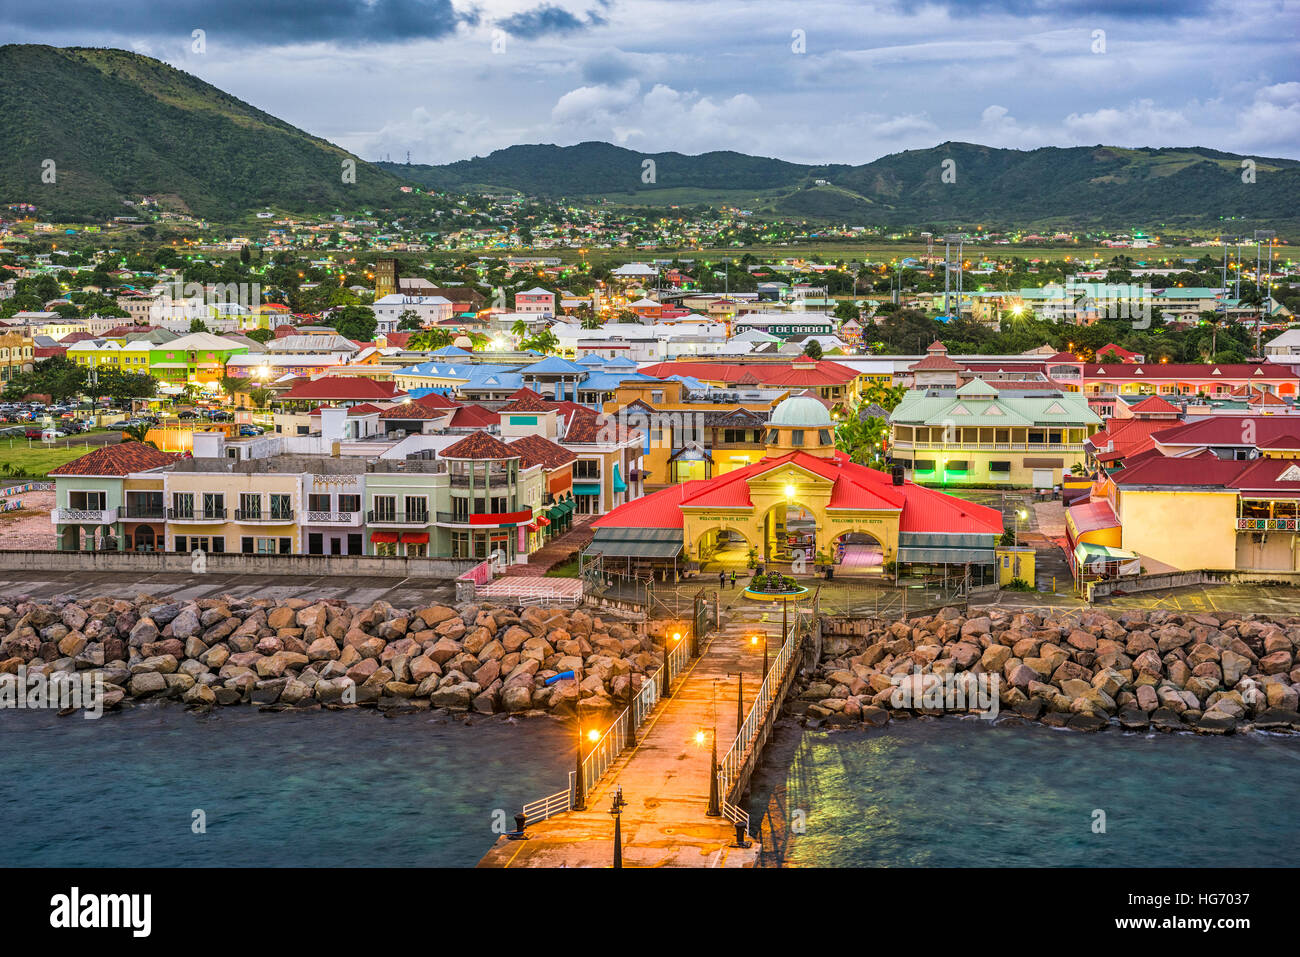 Basseterre St Kitts And Nevis Town Skyline At The Port